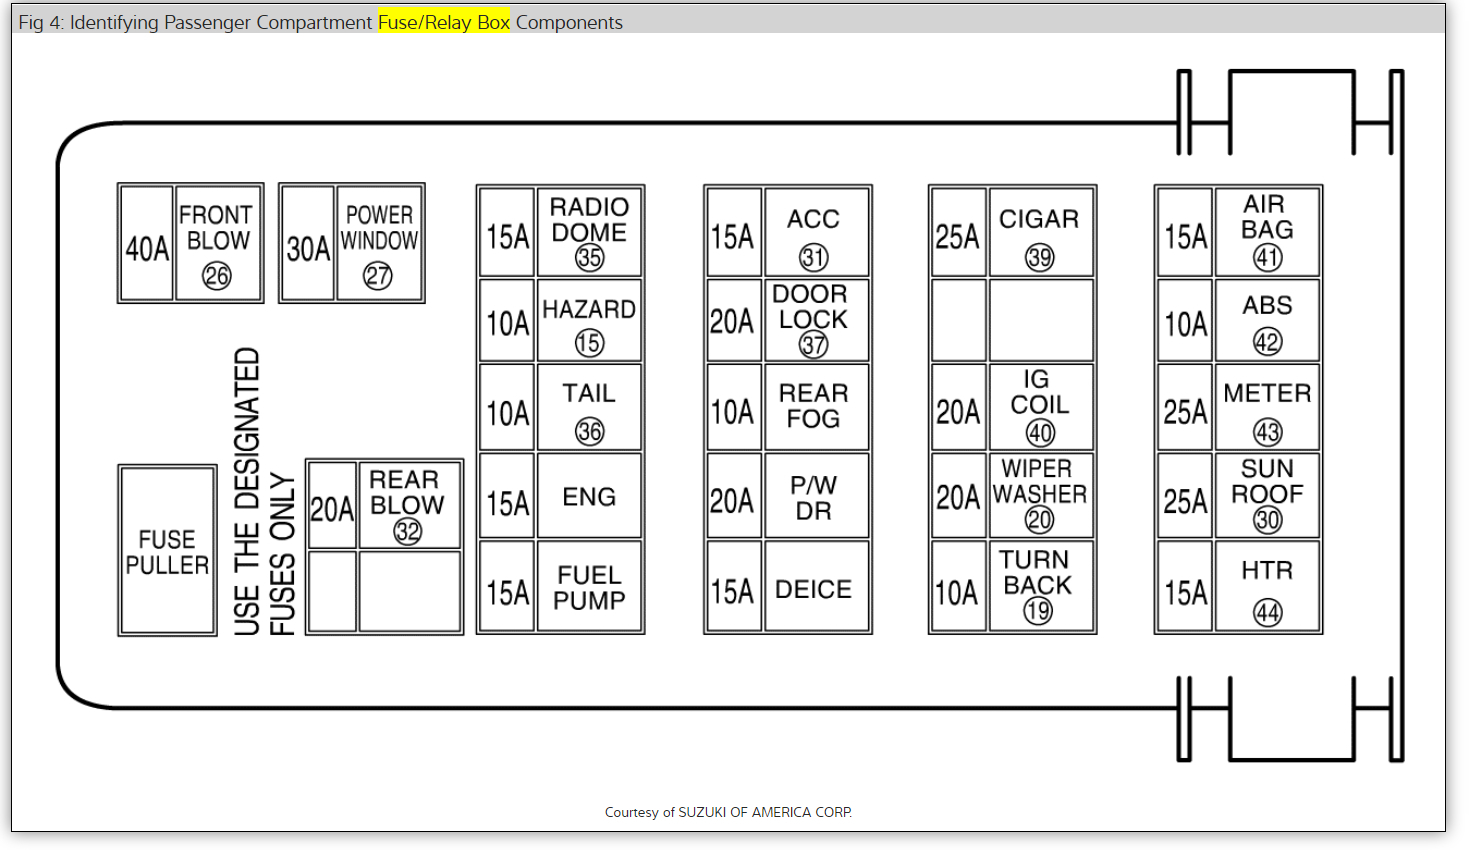 hight resolution of 2007 suzuki fuse box wiring diagram option suzuki baleno fuse box location 2007 suzuki fuse box